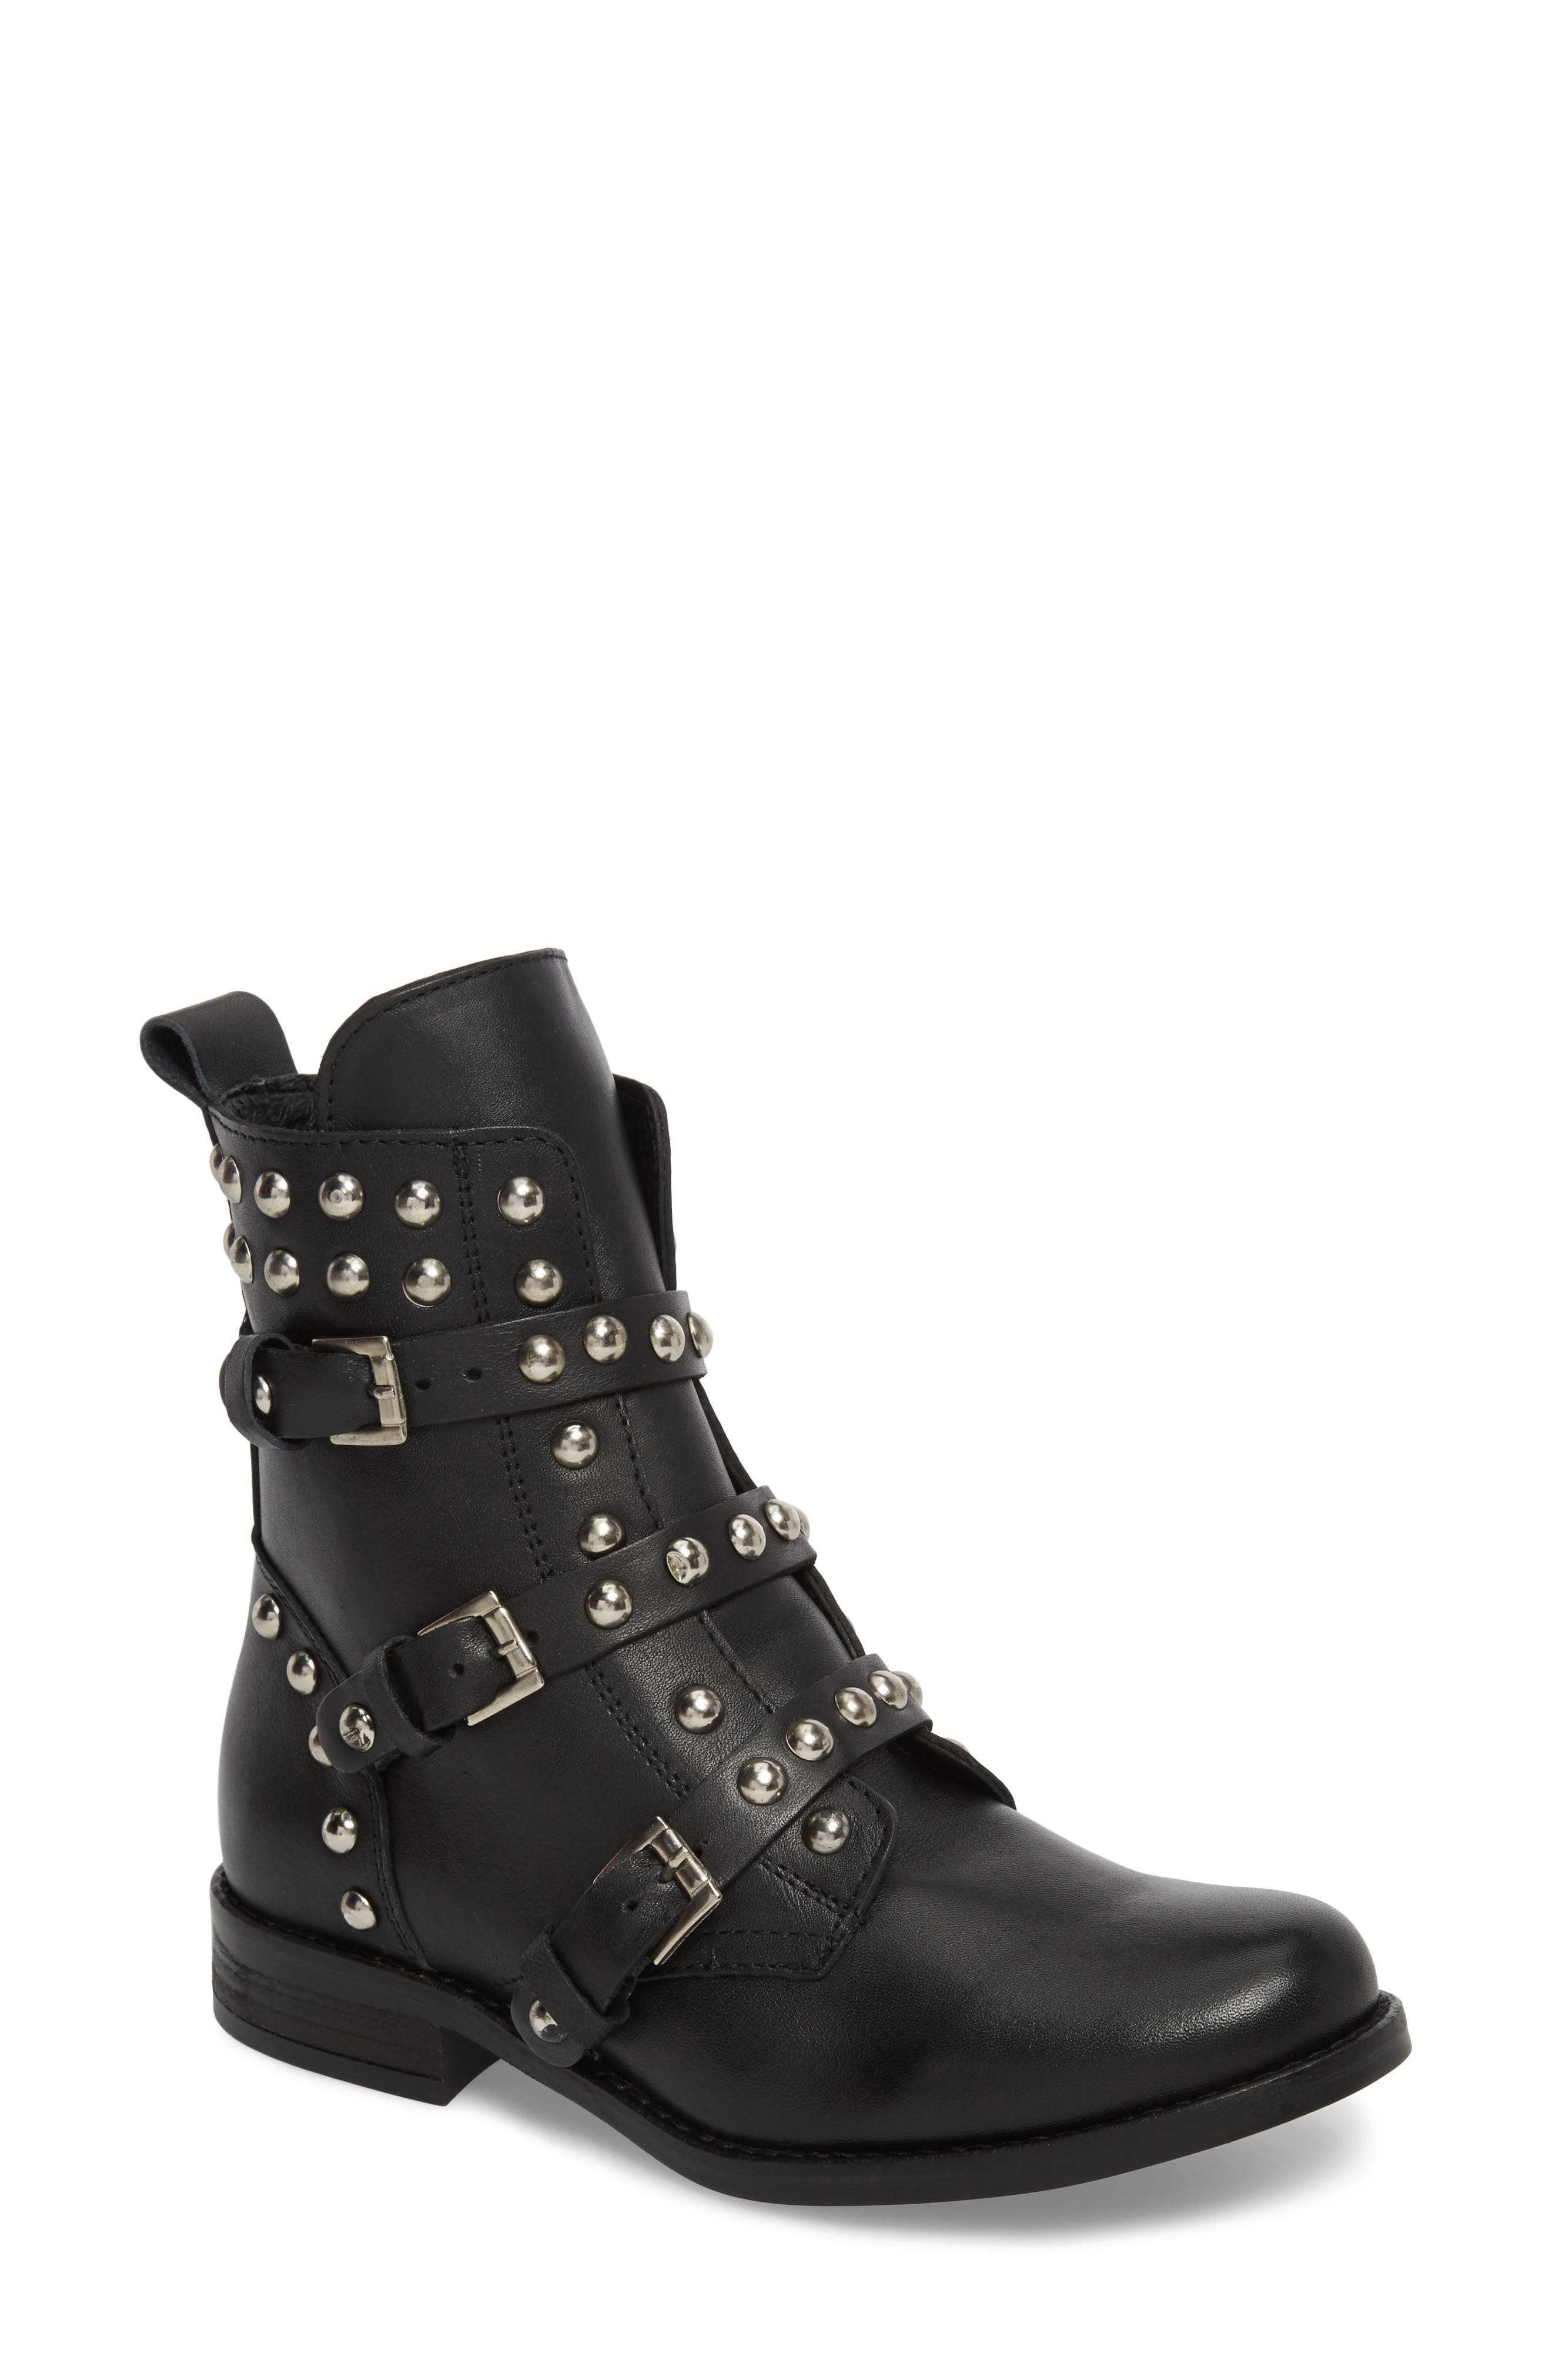 Alternate Image 1 Selected - Steve Madden Studded Spunky Boot (Women)